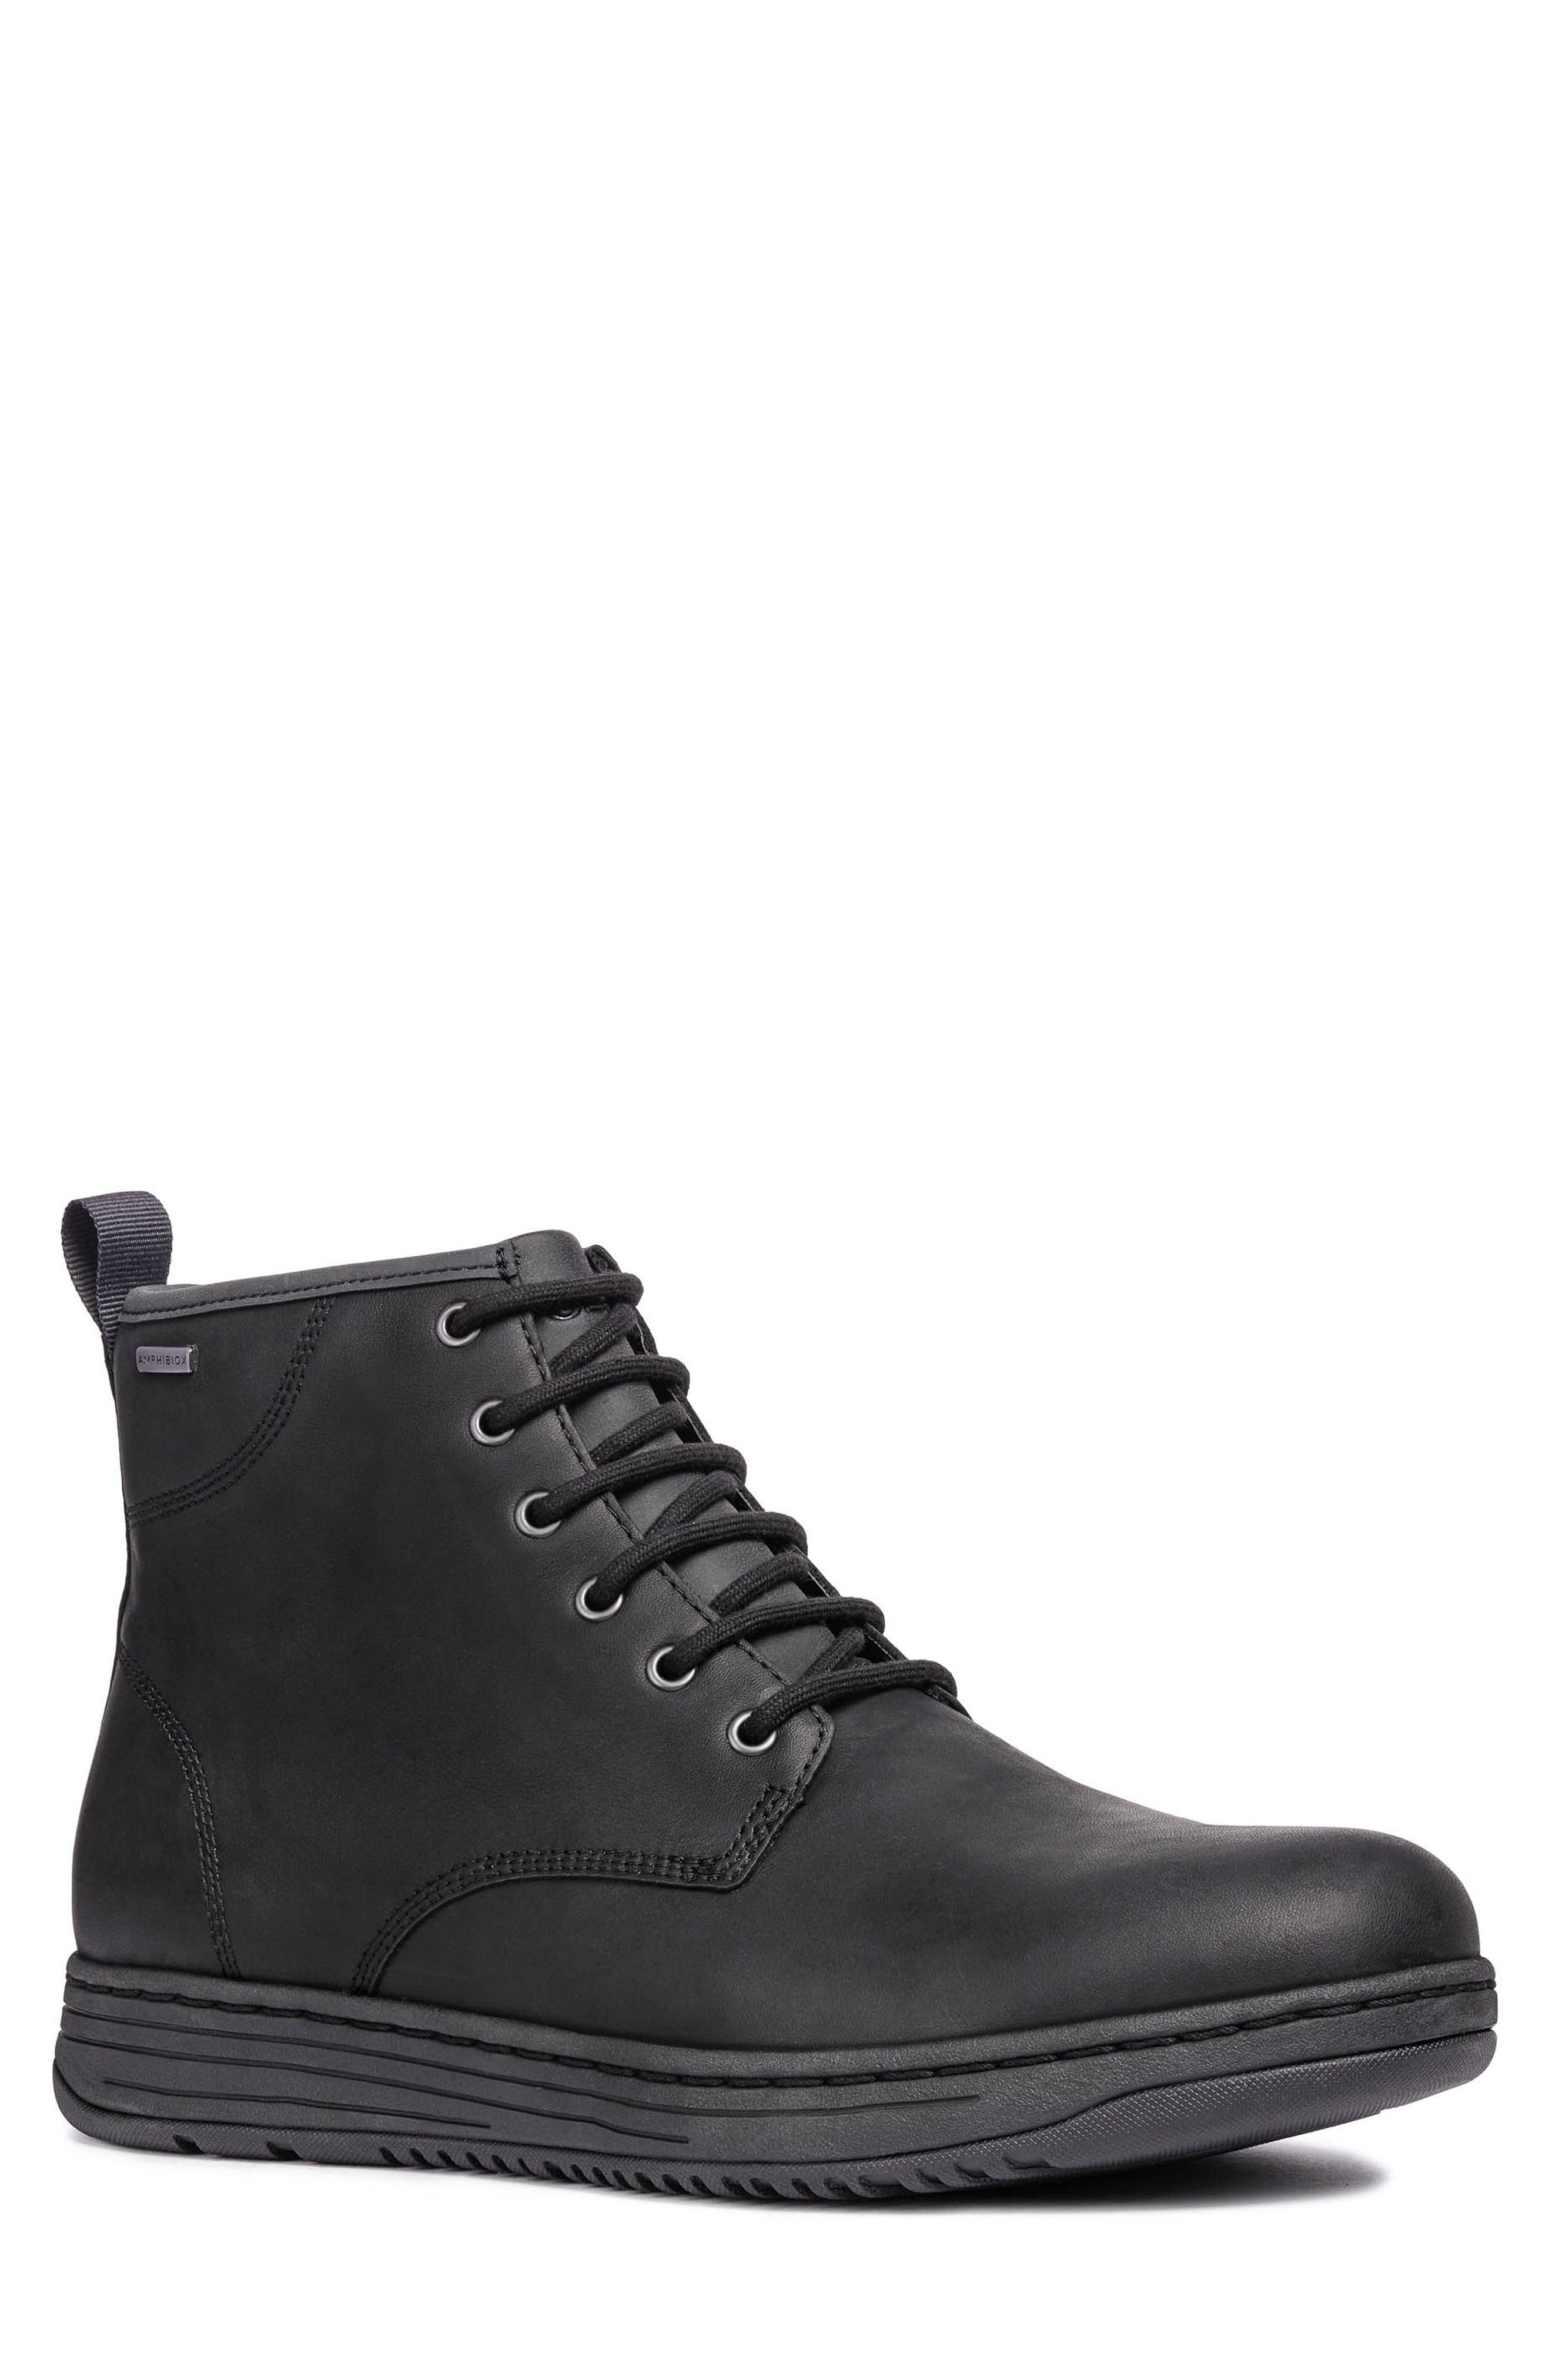 Abroad ABX 2 Tall Lace-Up Boot,                             Main thumbnail 1, color,                             BLACK